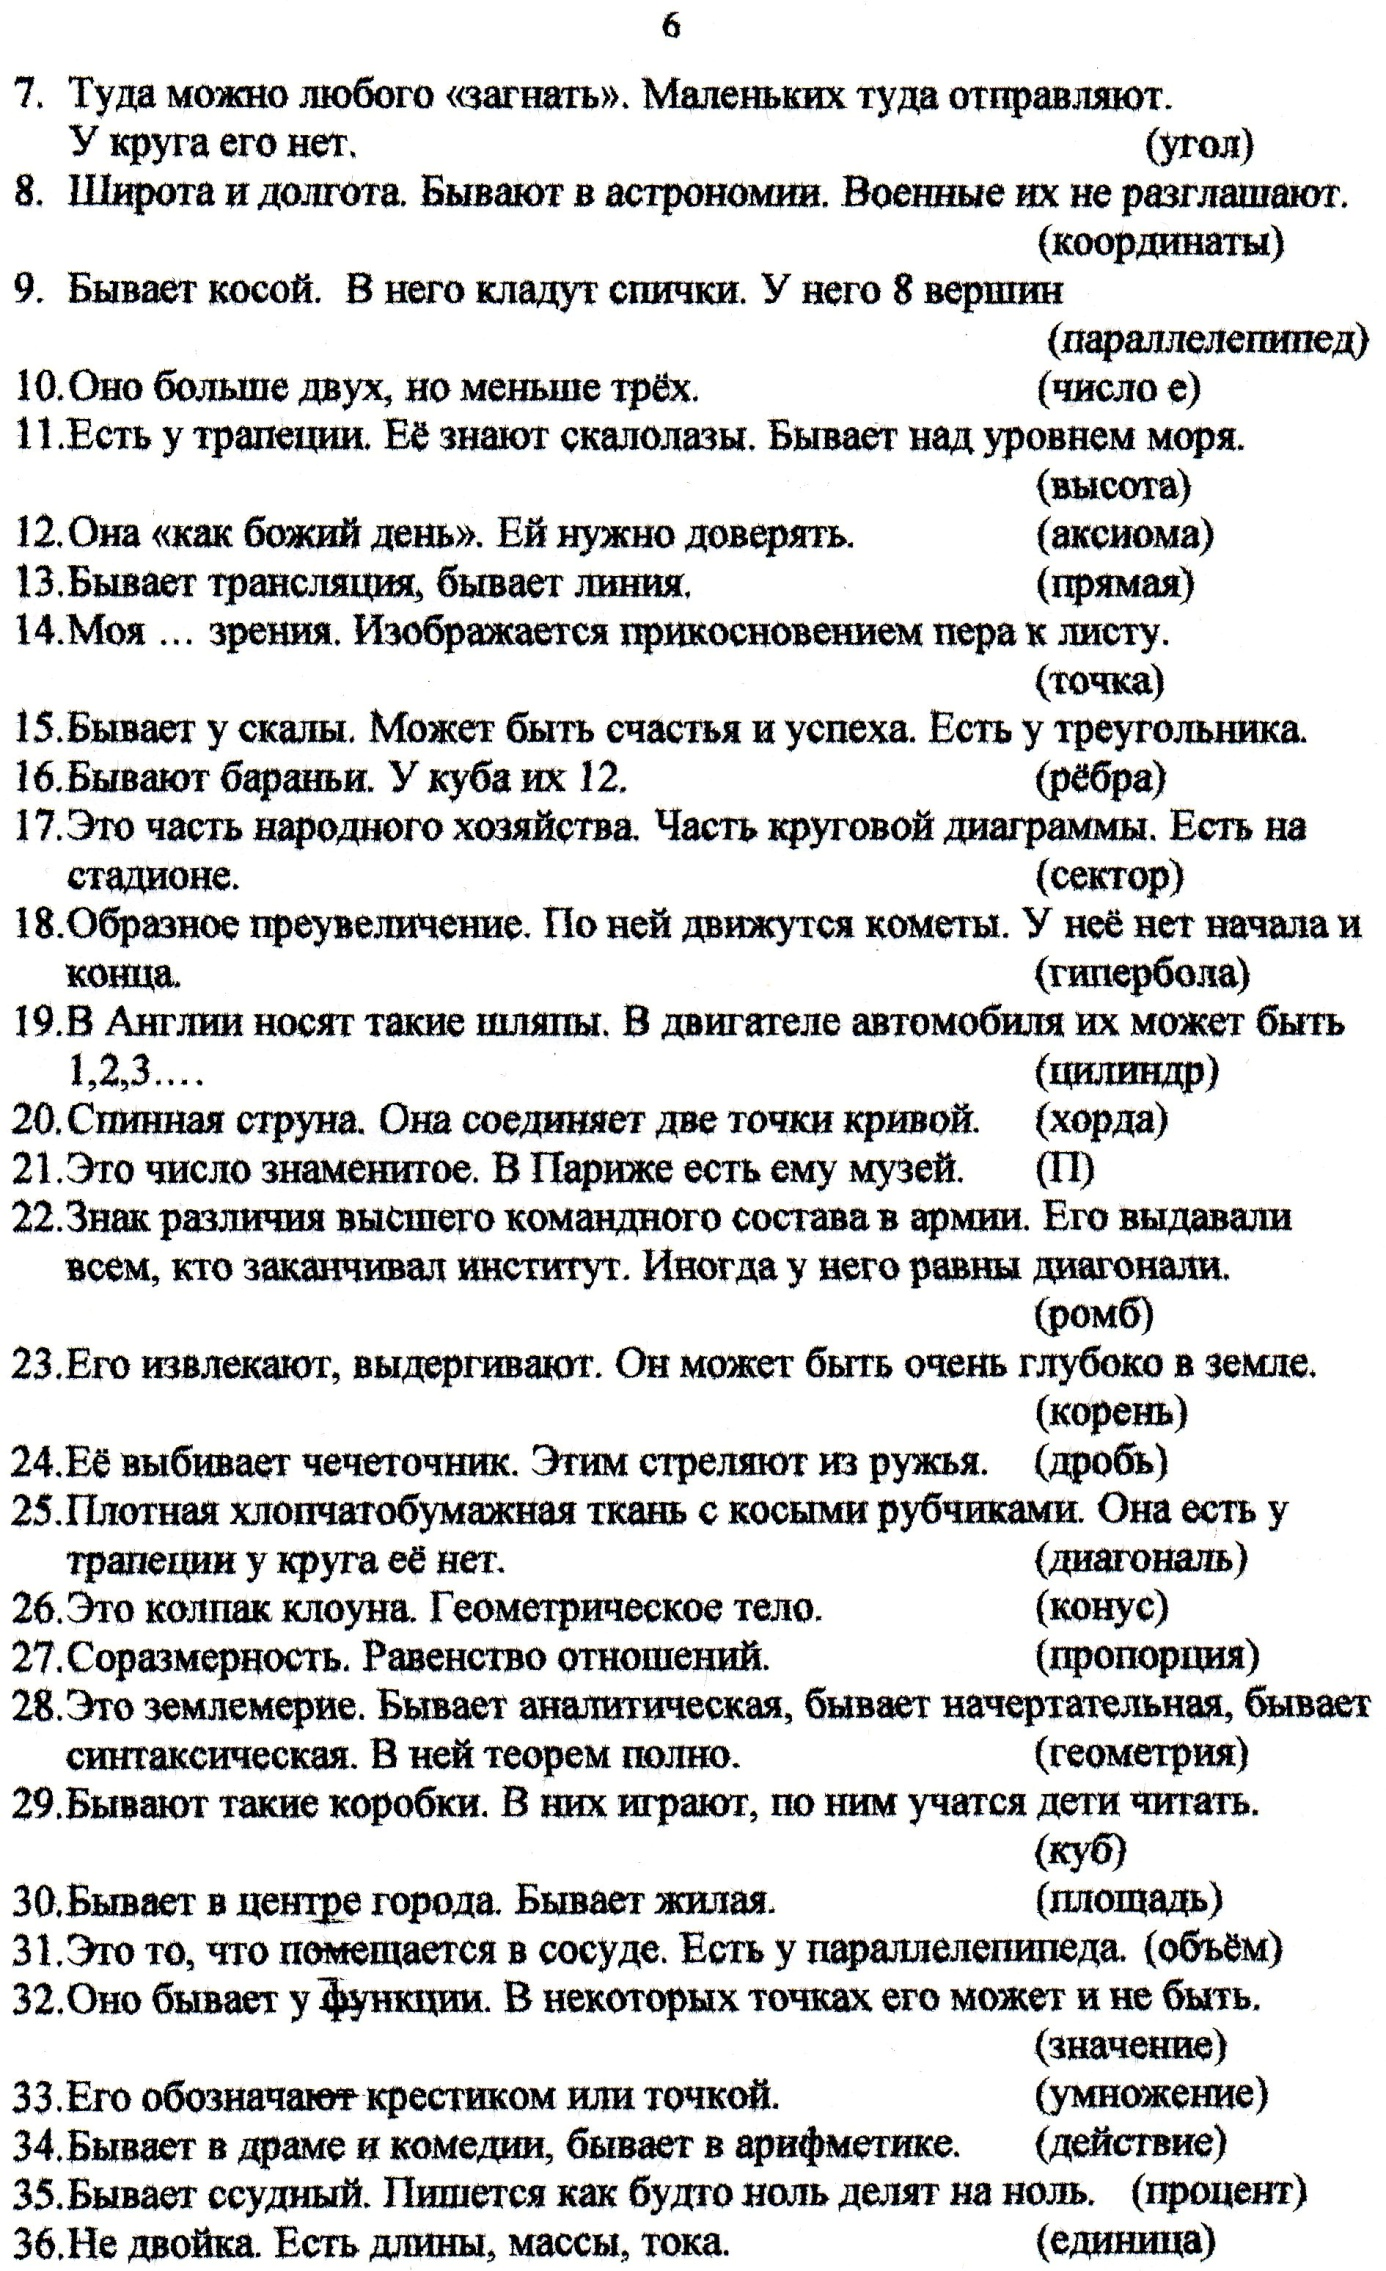 C:\Users\Валентина\Pictures\img177.jpg